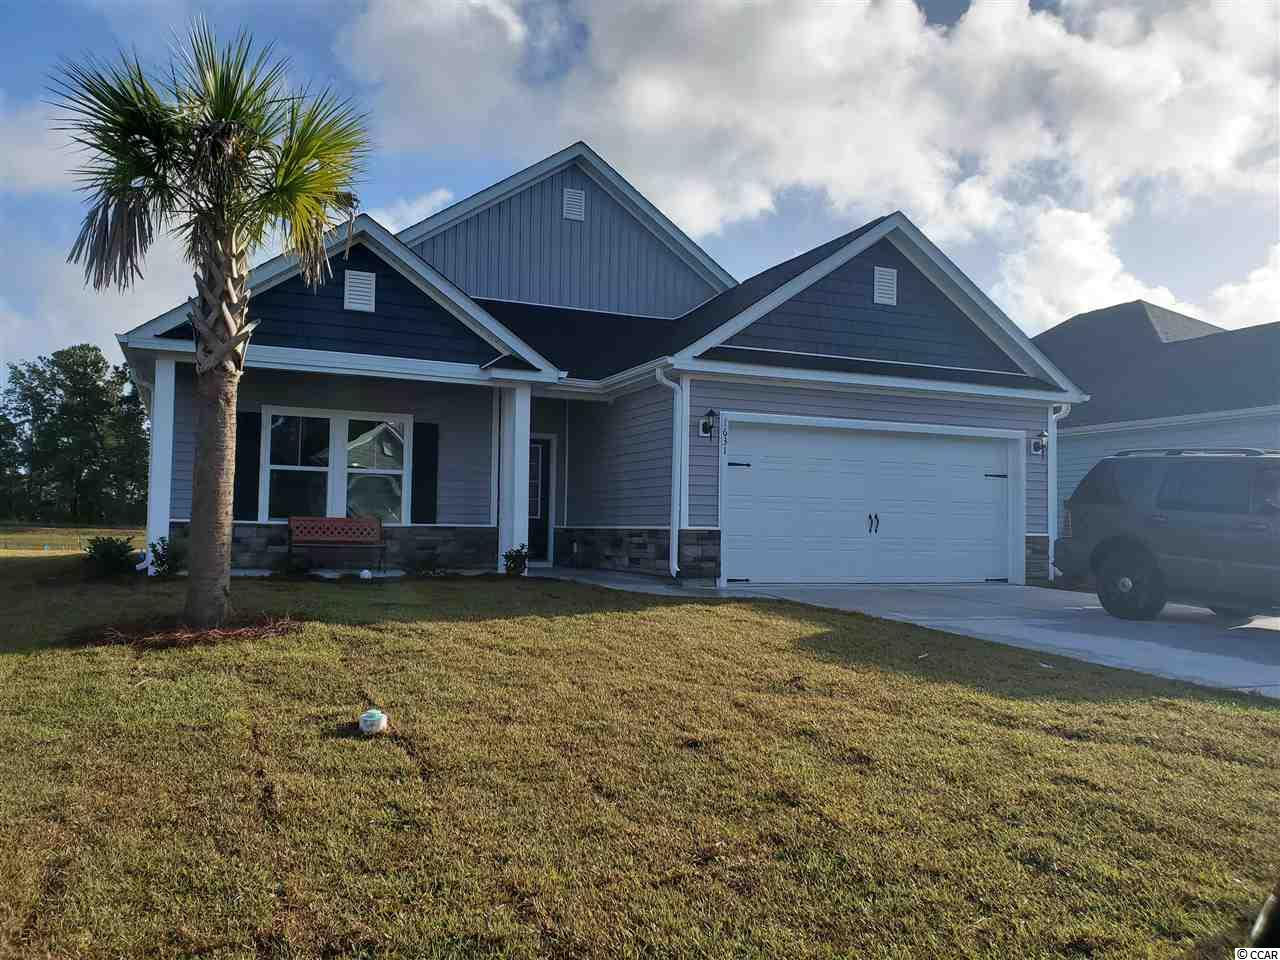 Stop into our on-site sales office today! Open floor plan with vaulted ceilings. Hardwood or LVP flooring, Granite, and Tile. Great location for shopping, dining, and golfing. Minutes away from the beach or Coastal Carolina University. Pictures and virtual tour may show upgraded features or selections not included in standard model.